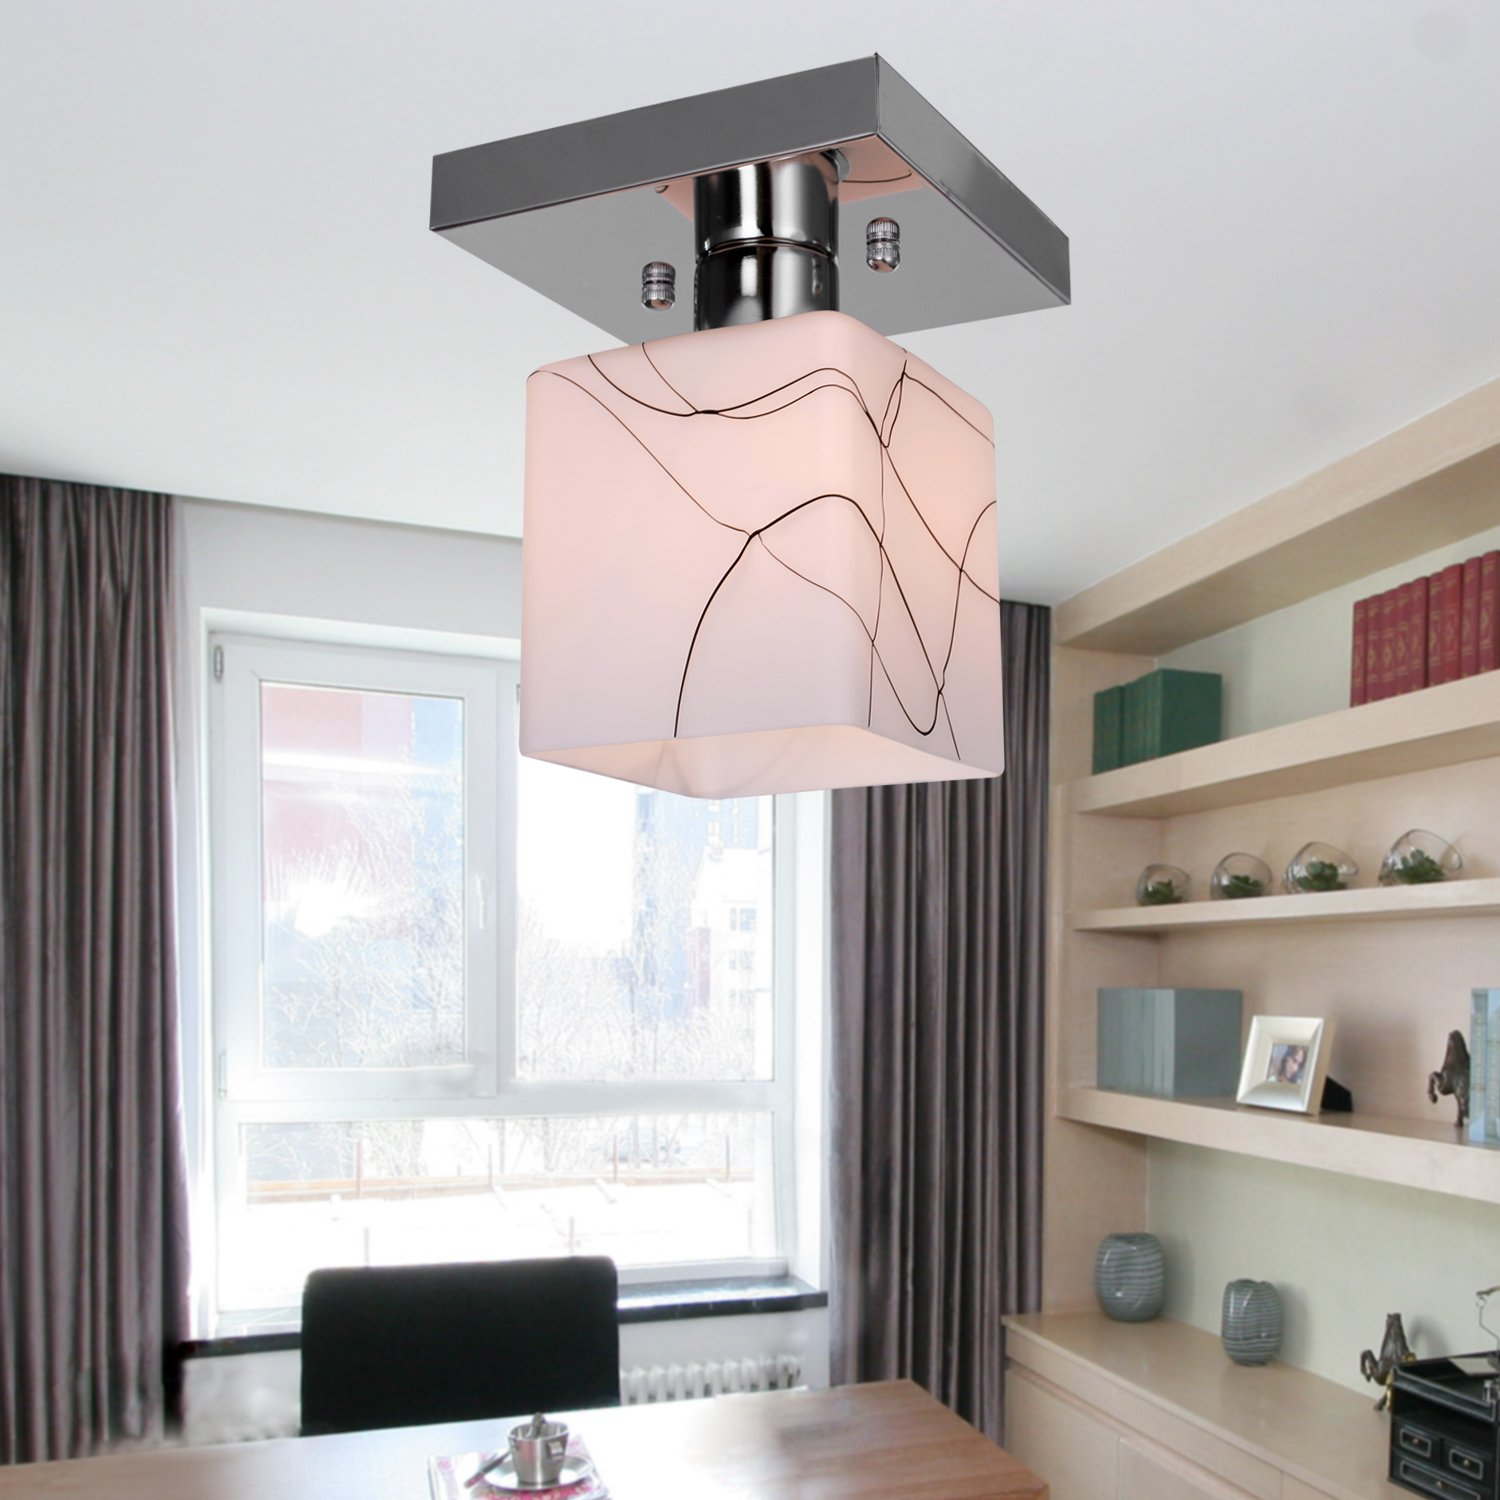 Lightintheboxstainless steel ceiling light in cube shape modern stainless steel ceiling light in cube shape modern mini style flush mount for kitchen flush mount ceiling light fixtures amazon aloadofball Image collections